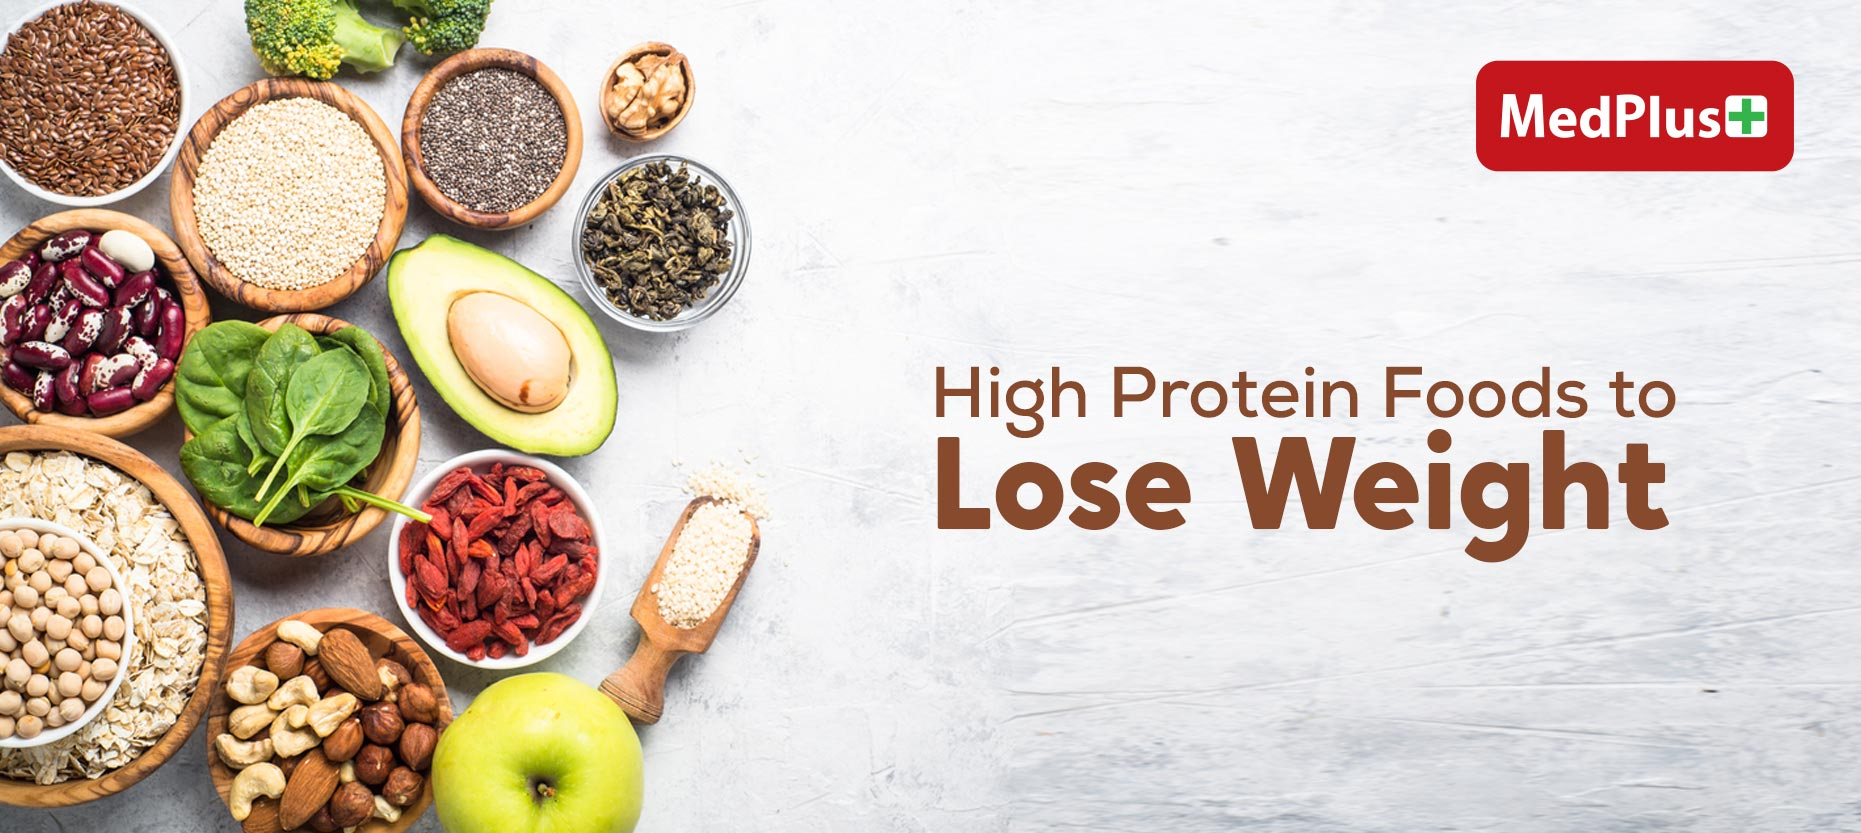 High Protein Foods to Lose Weight